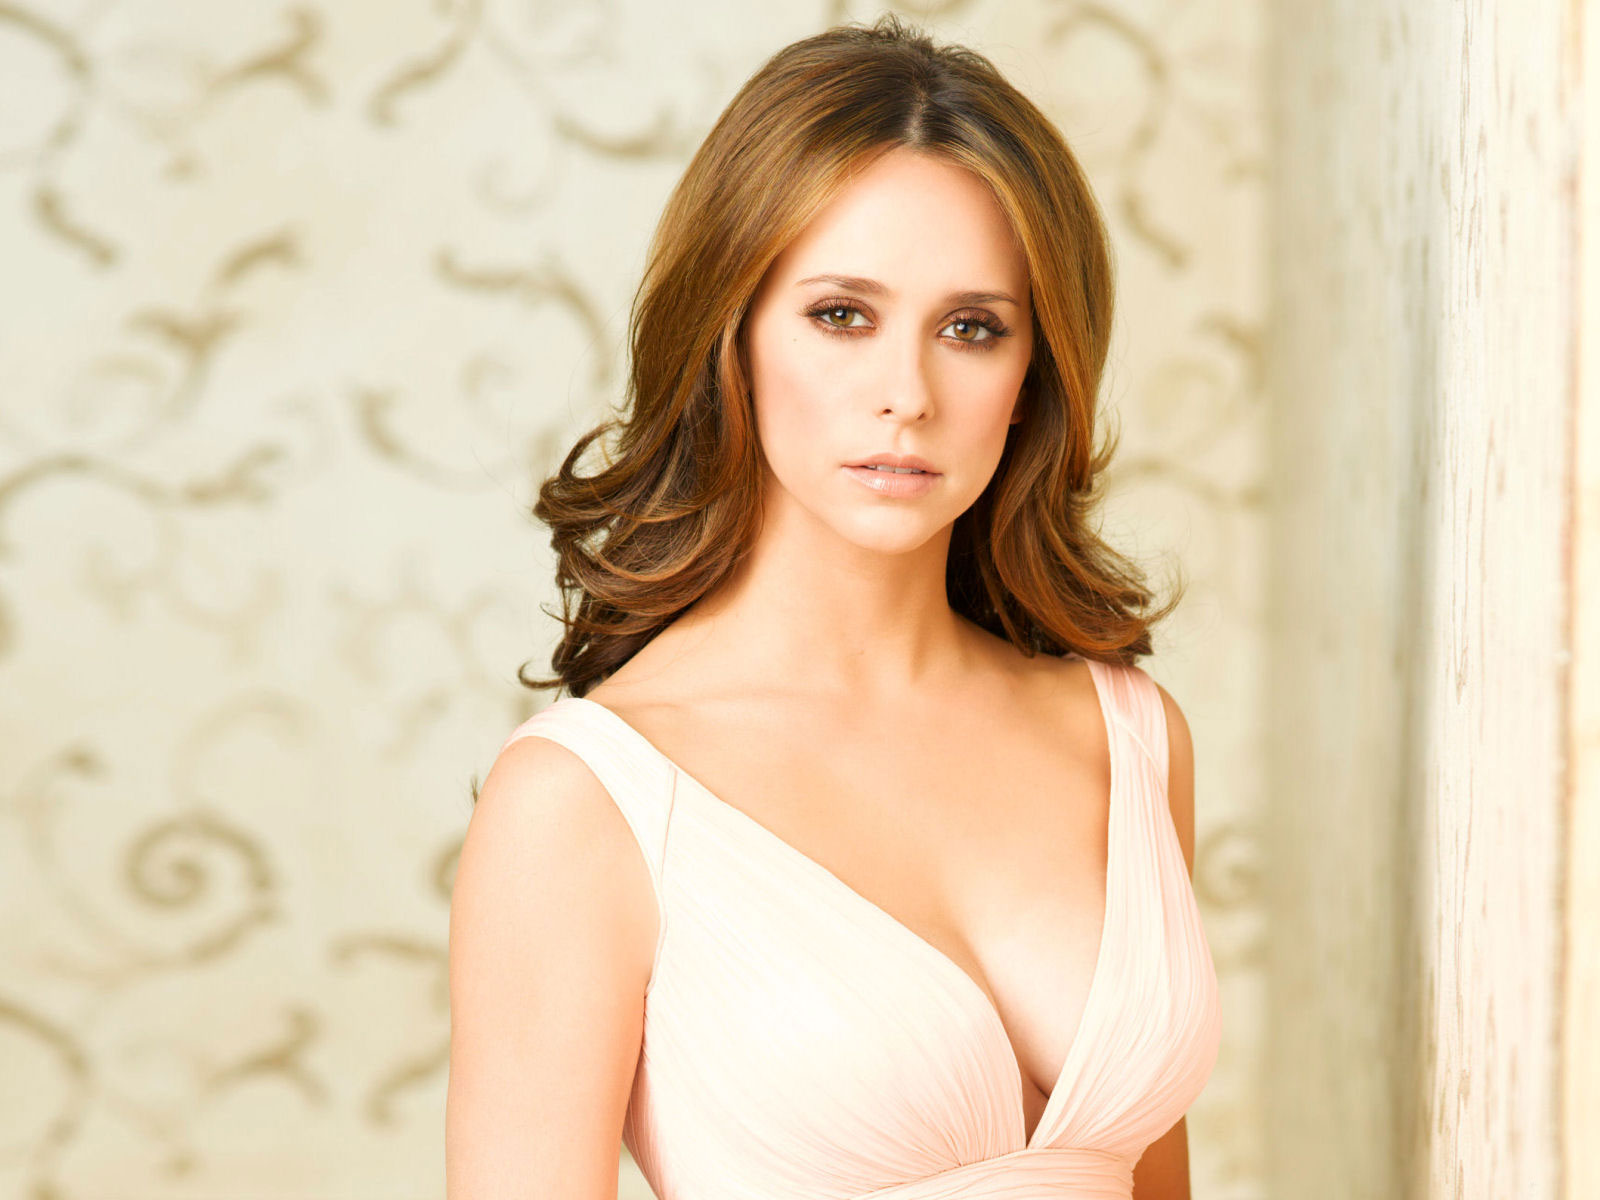 Jennifer Love Hewitt 24 wallpaper